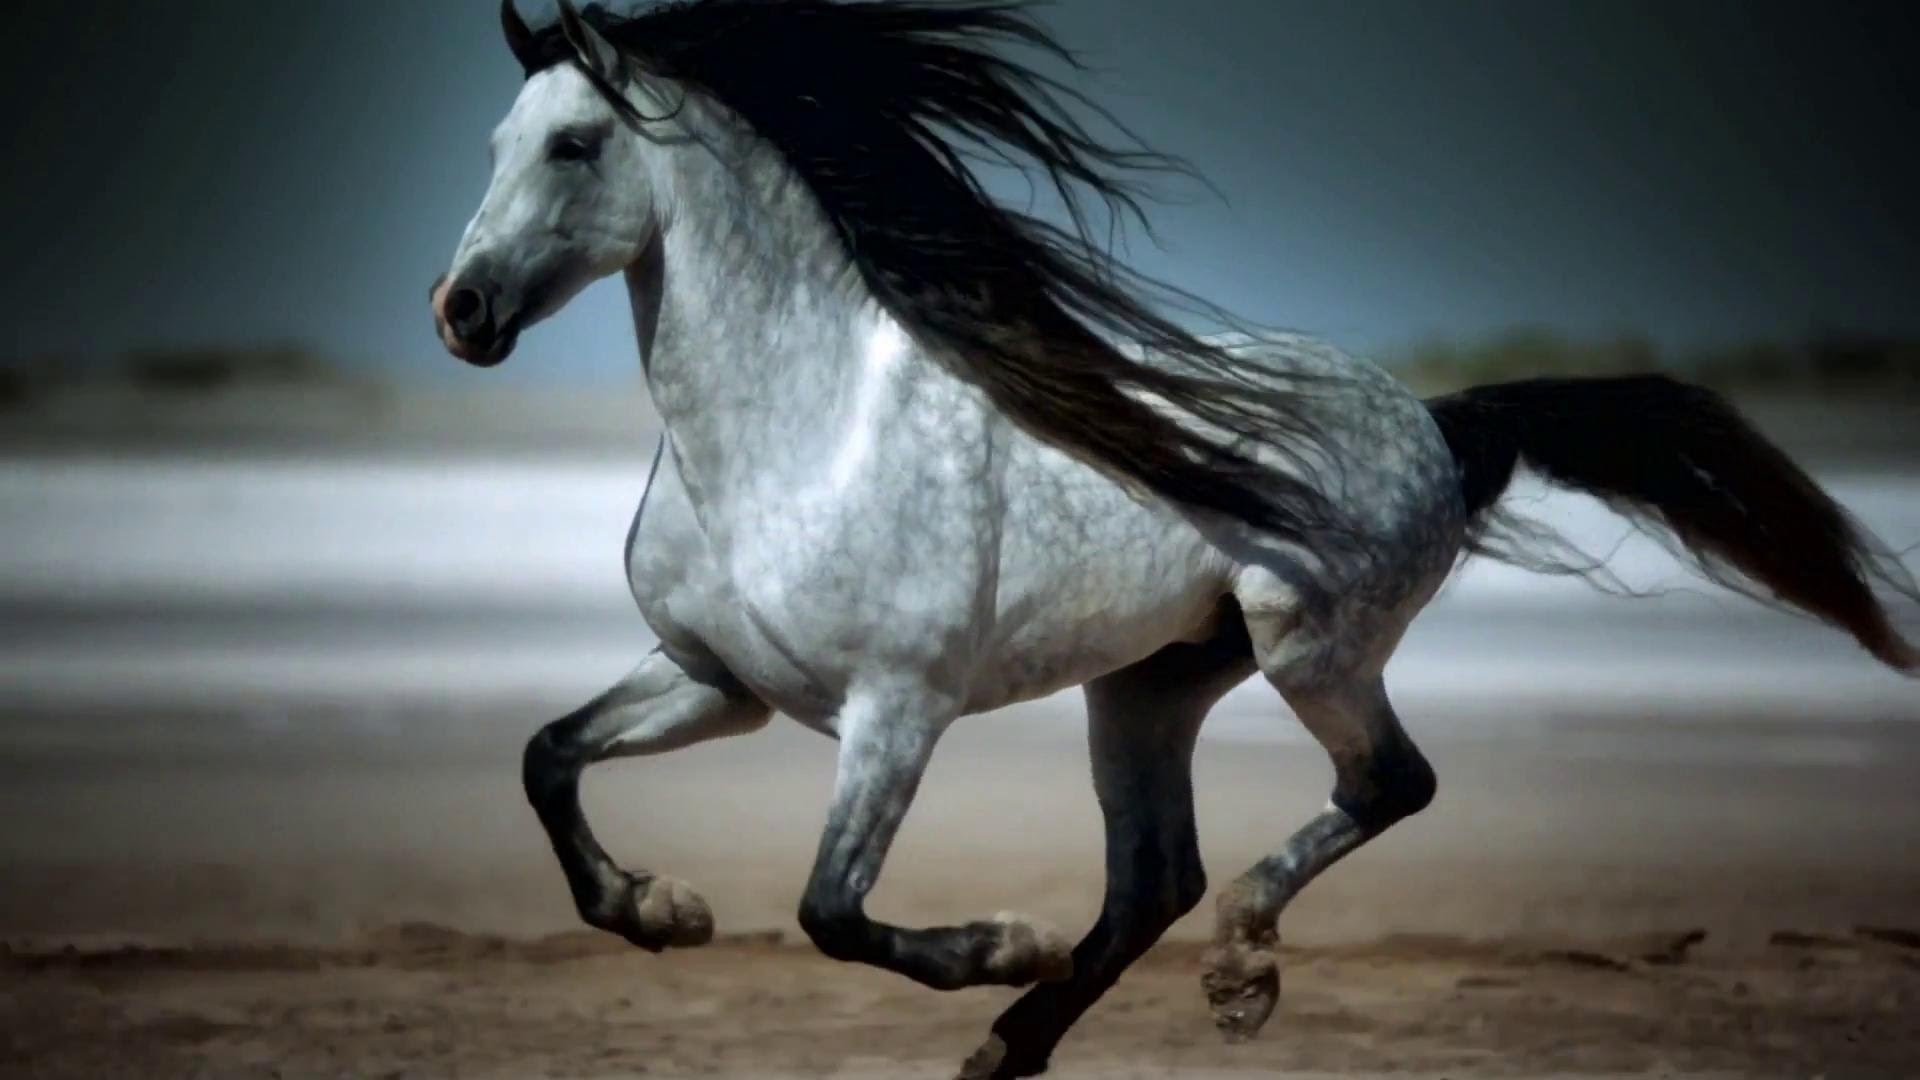 Res: 1920x1080, Awesome Indian Horses Pics 1080 Pixel Full Hd Wallpaper Images About News  For Mobile Phones